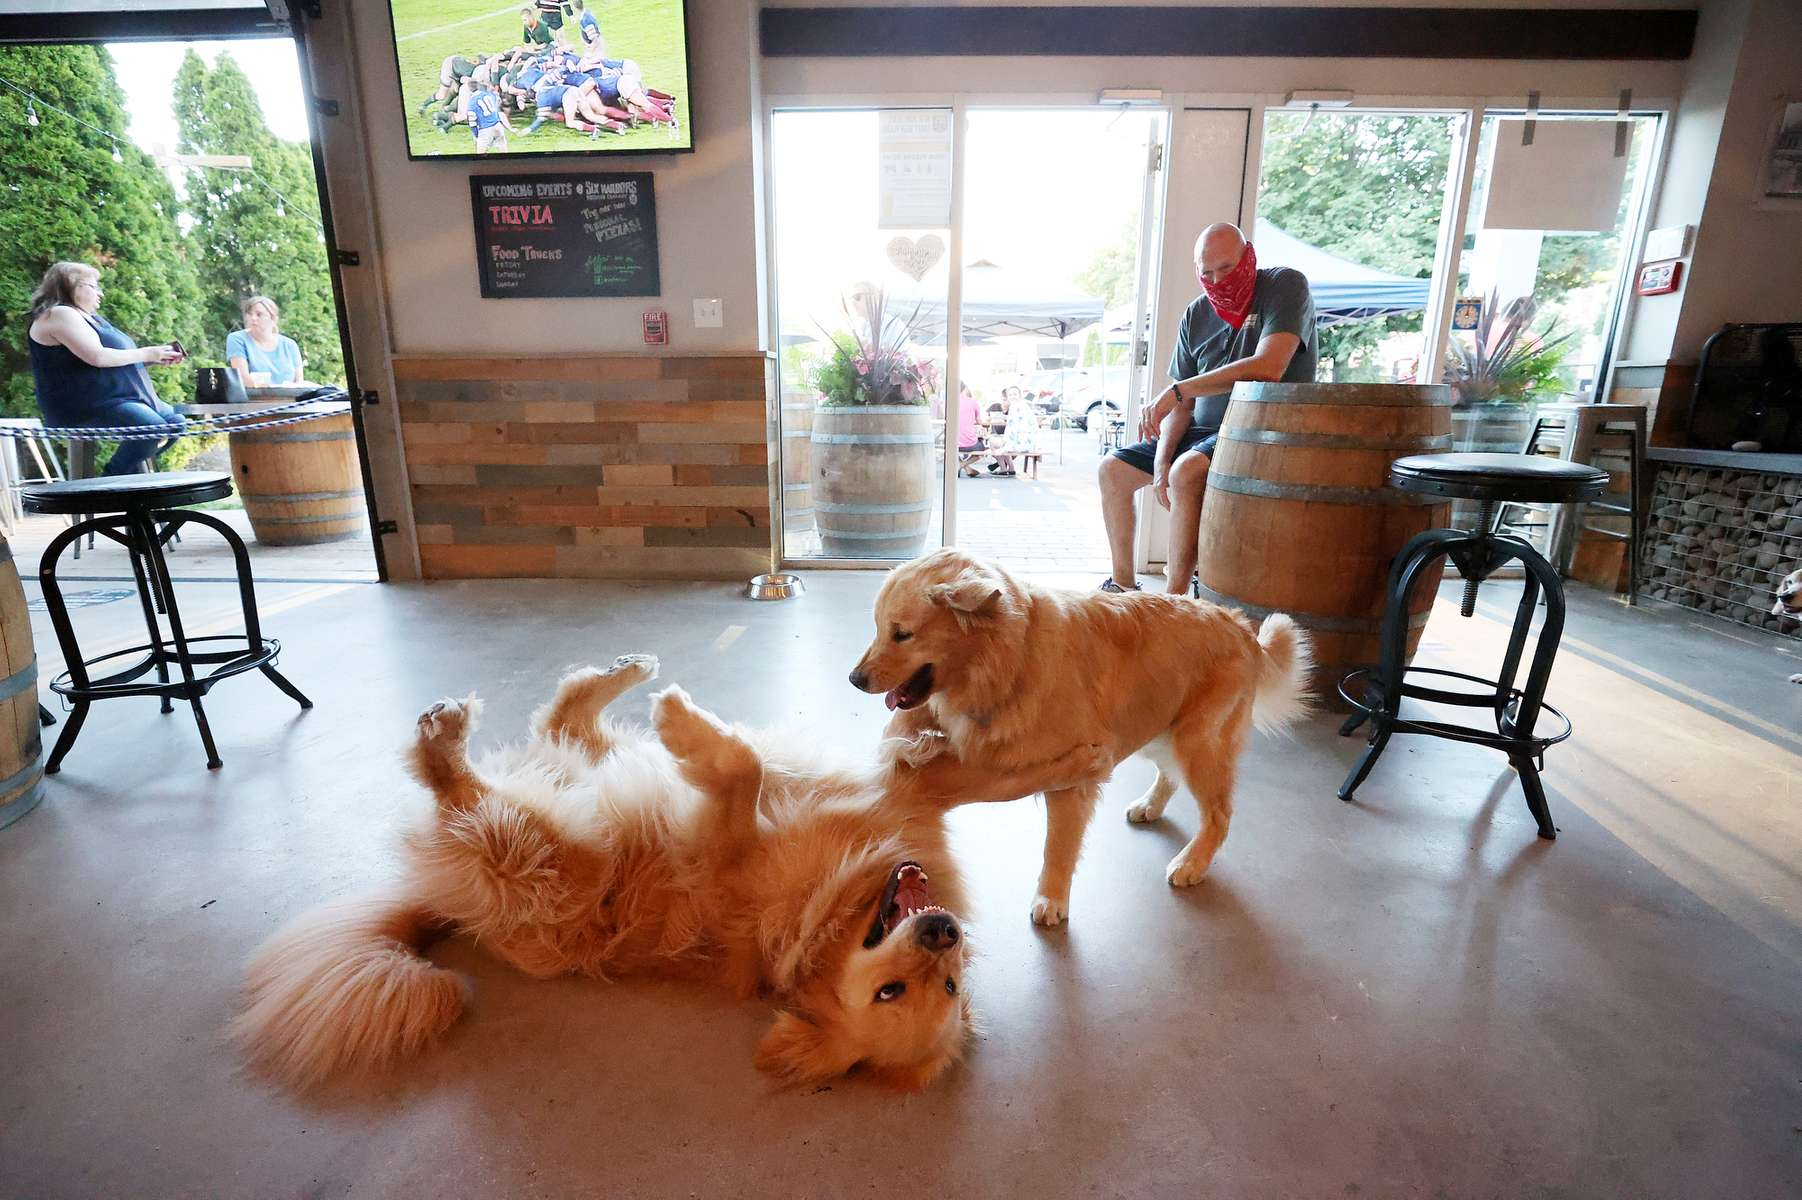 Mark Heuwetter who is the co owner of the Six Harbors Brewery watches his his Golden Retrievers Buddy and Barley play in the bar area as Long Island begins Phase 3 of reopening, allowing restaurants To Seat inside At 50 Percent Capacity and nail salons to open by appointment only on June 24, 2020 in Huntington, New York.